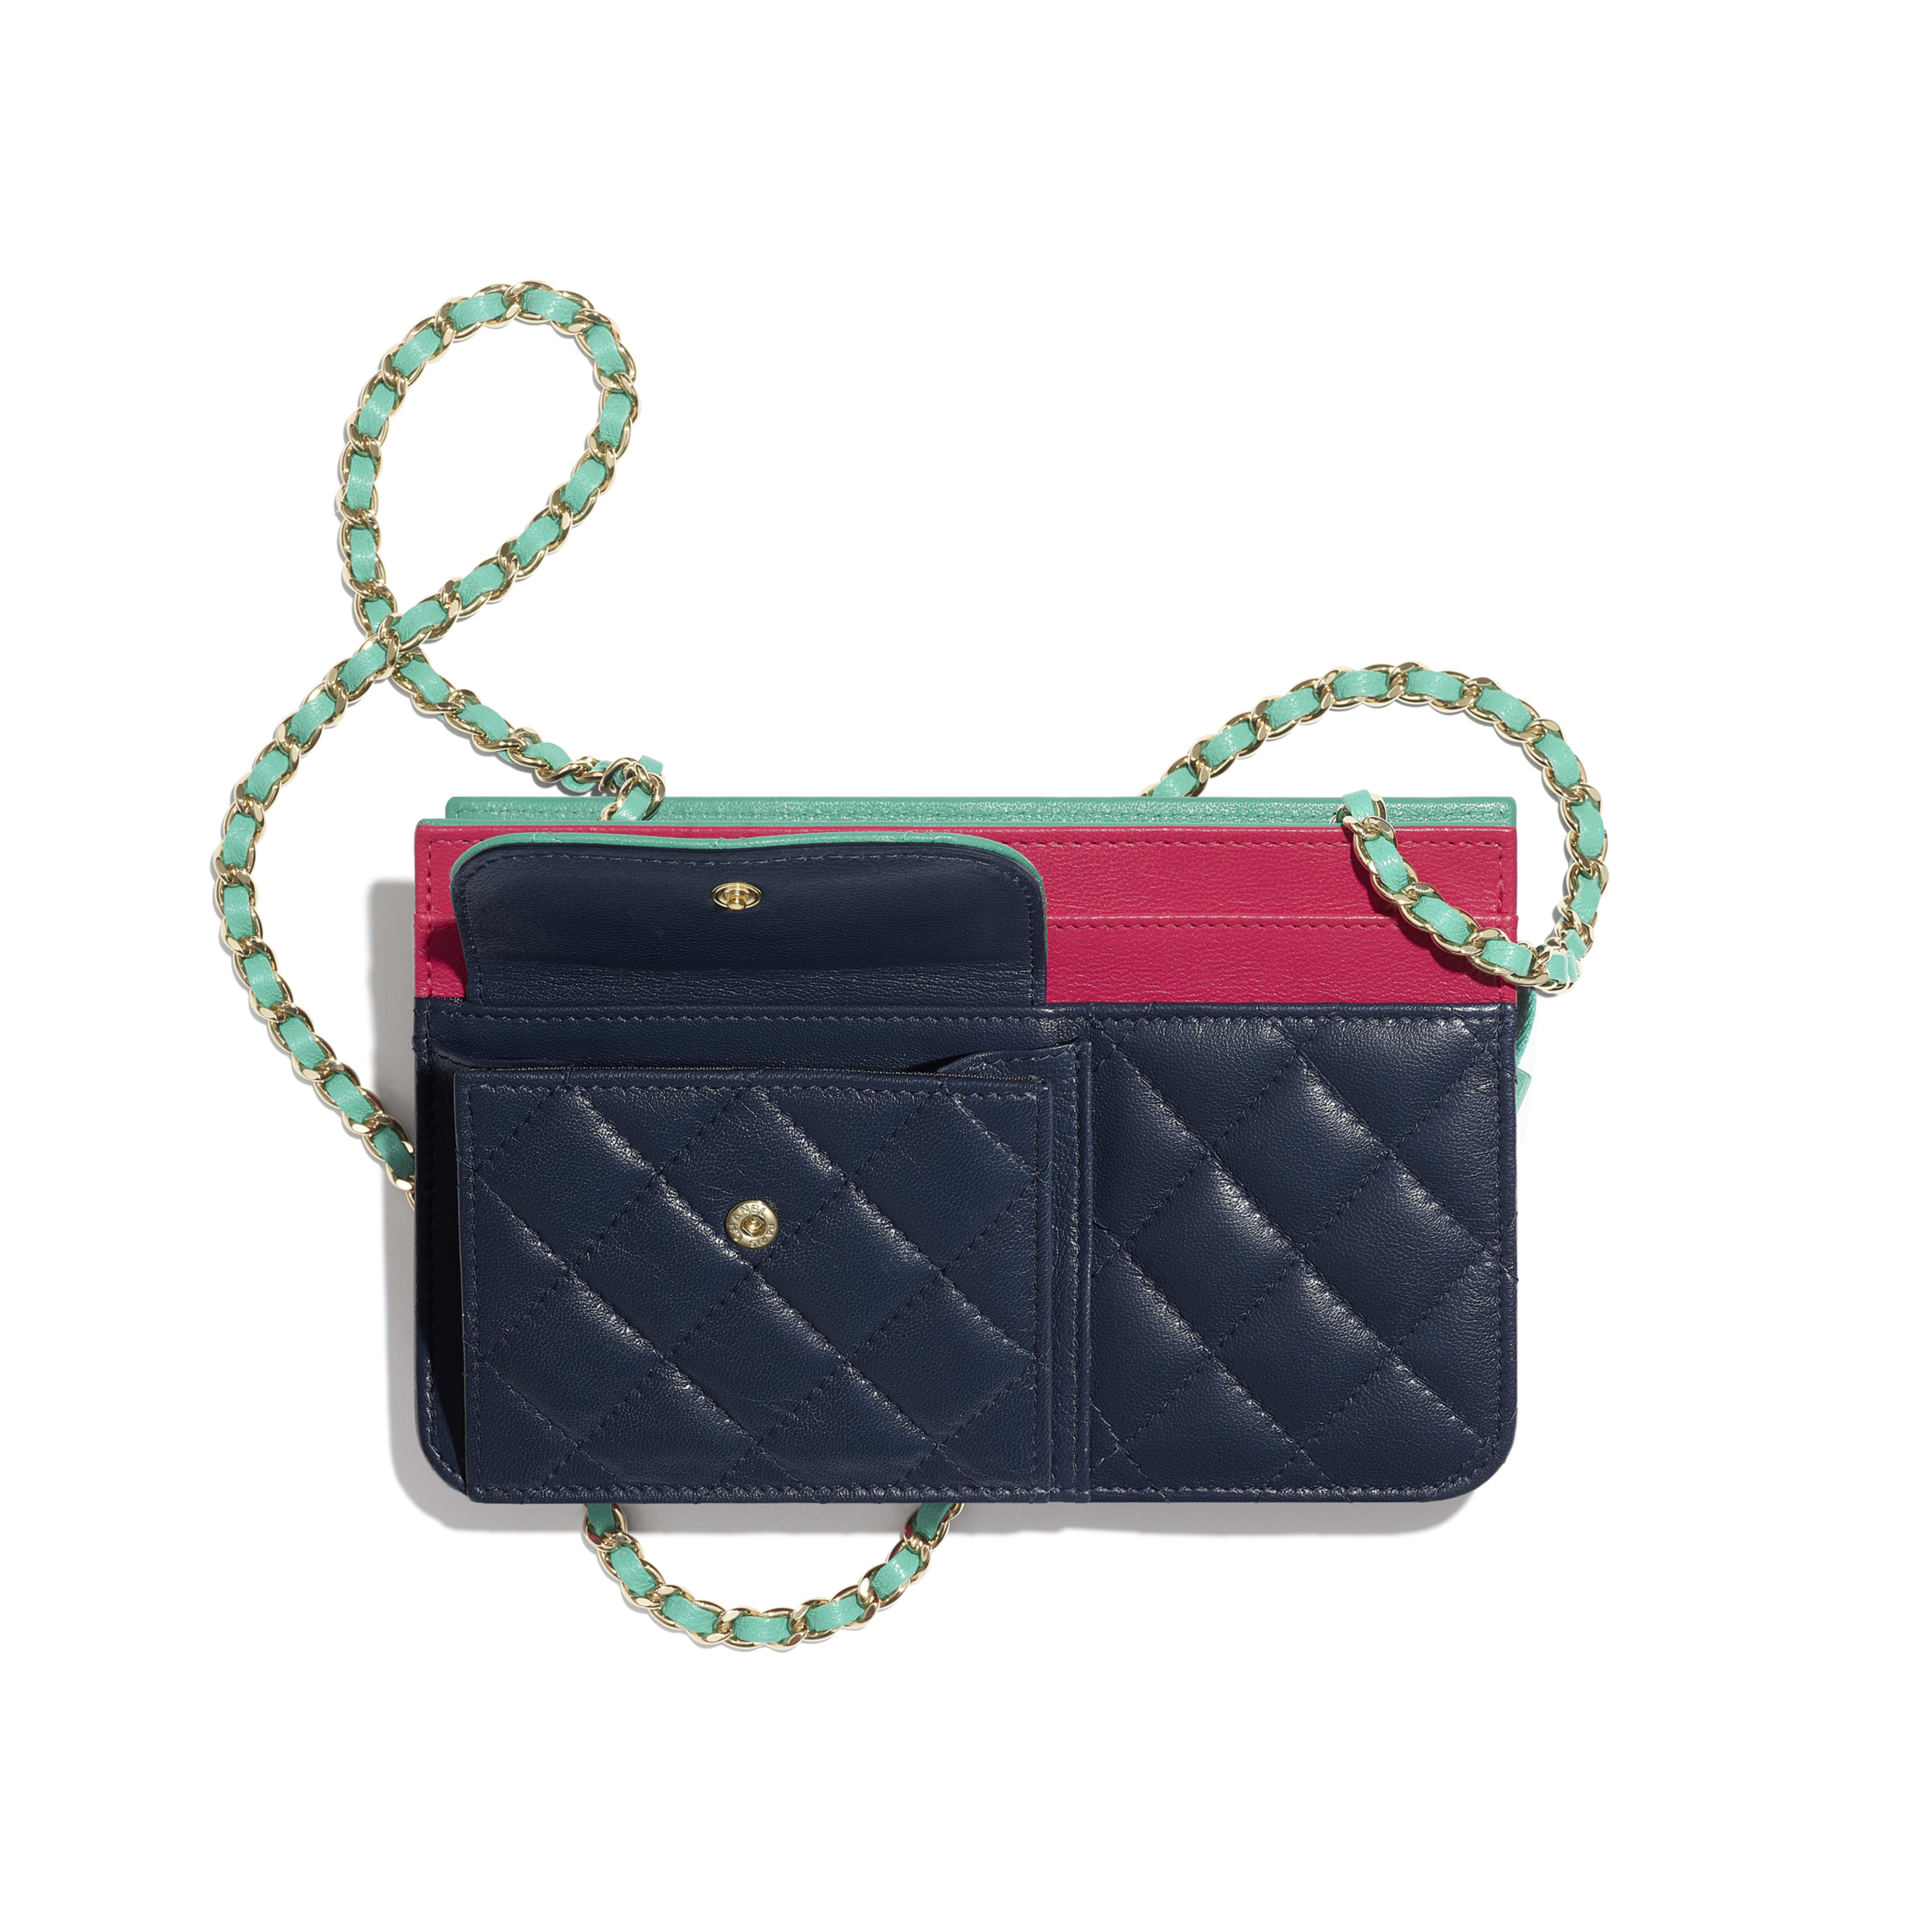 Wallet On Chain - Navy Blue, Green & Dark Pink - Goatskin & Gold-Tone Metal - Other view - see full sized version